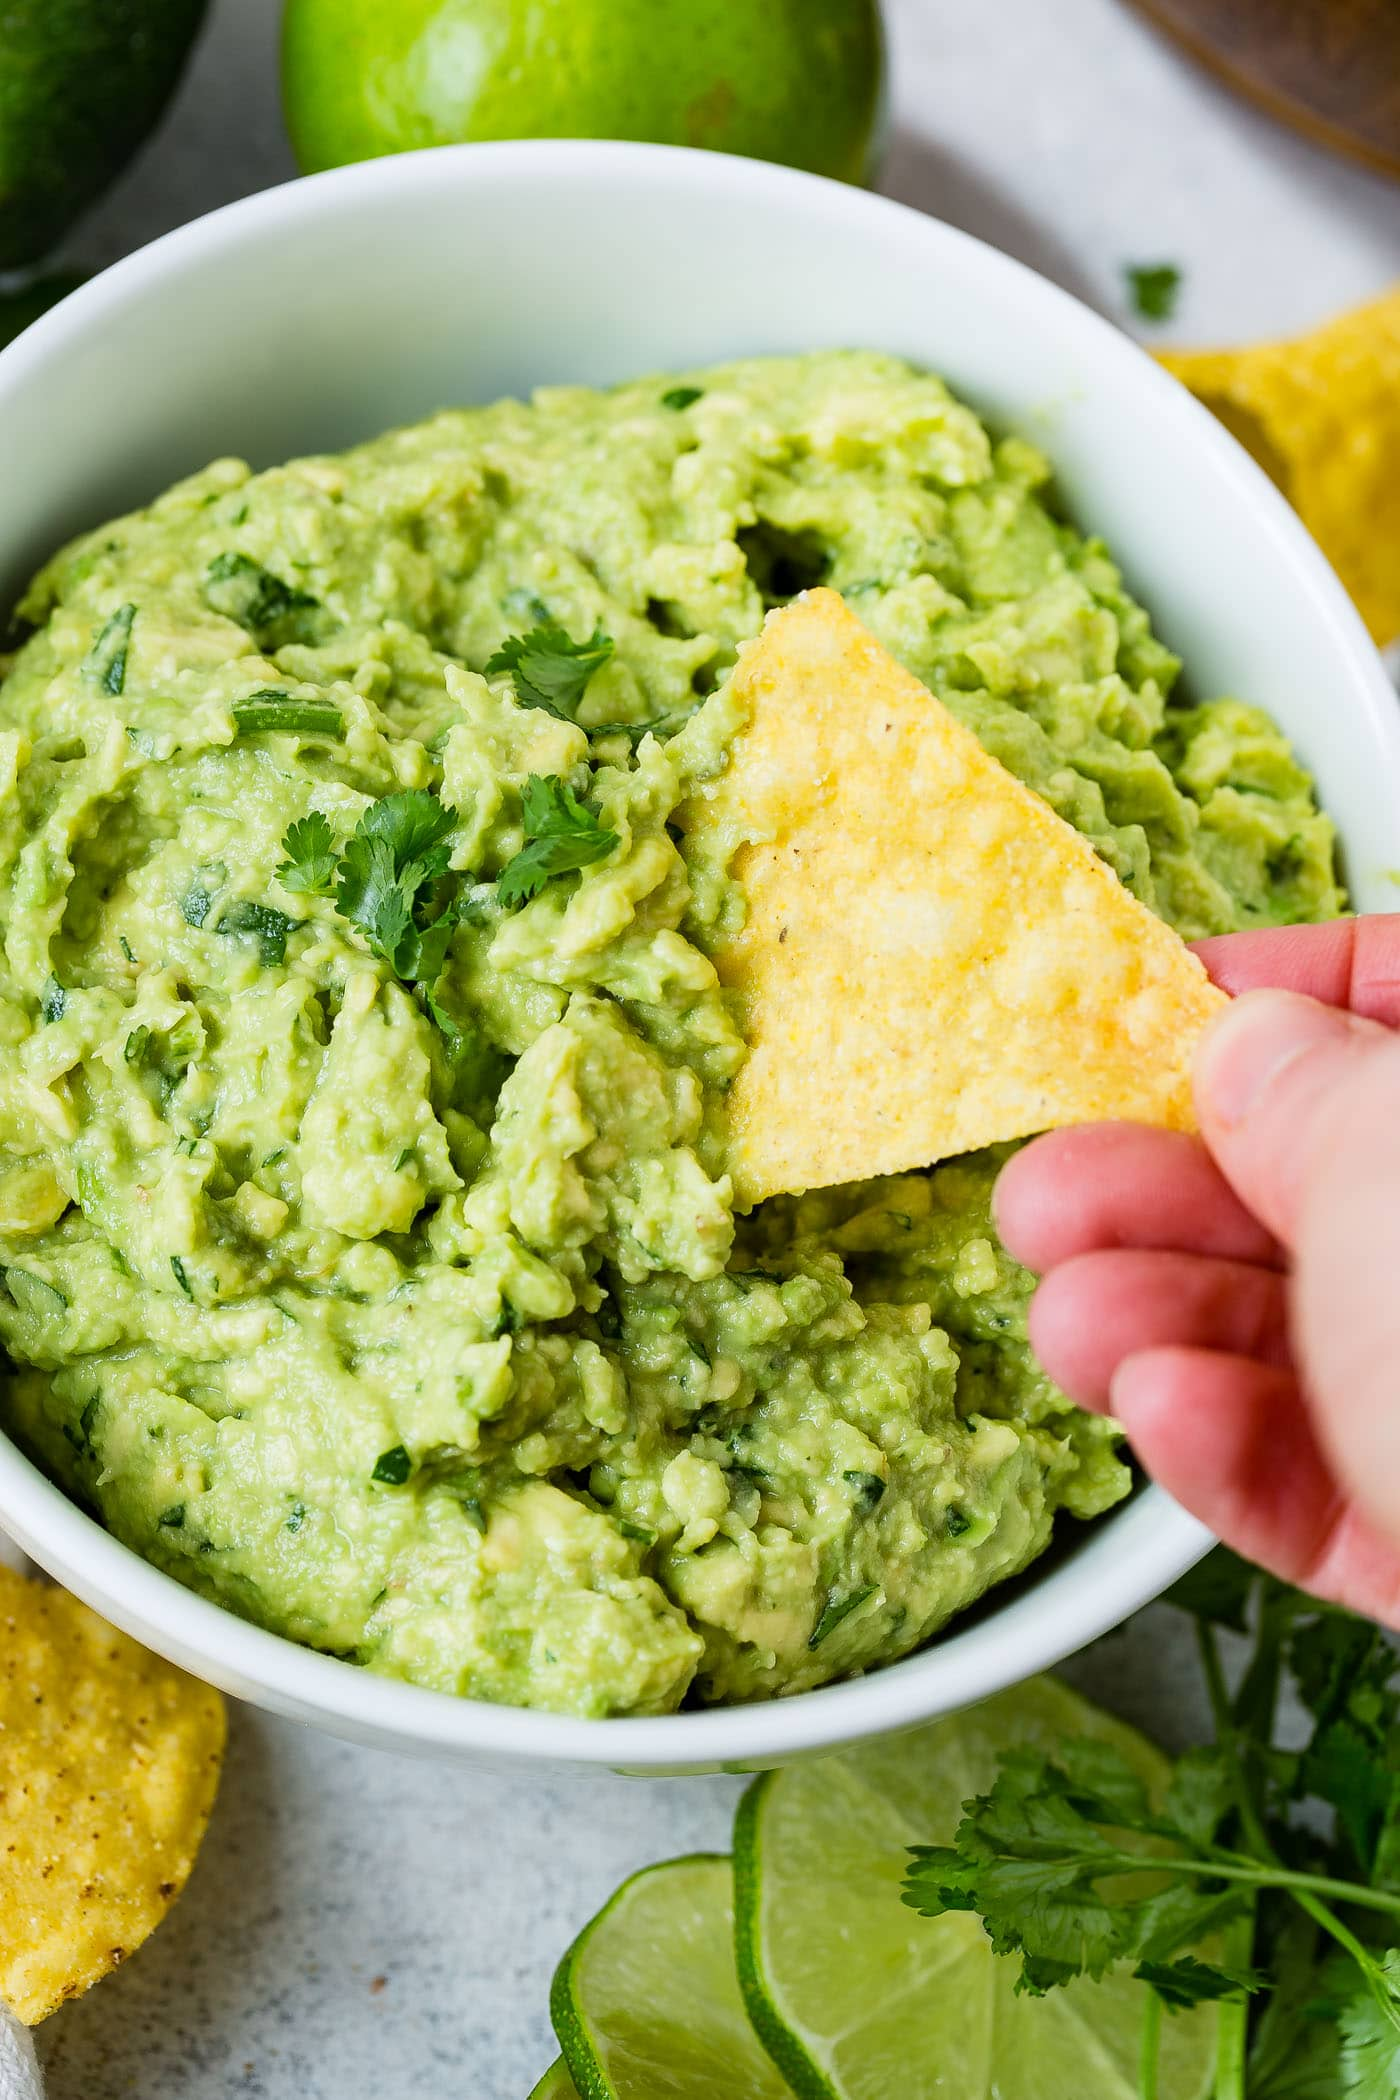 A tortilla chip being dipped into a bowl of fresh green guacamole. There are a couple of cilantro leaves on top of the guacamole.